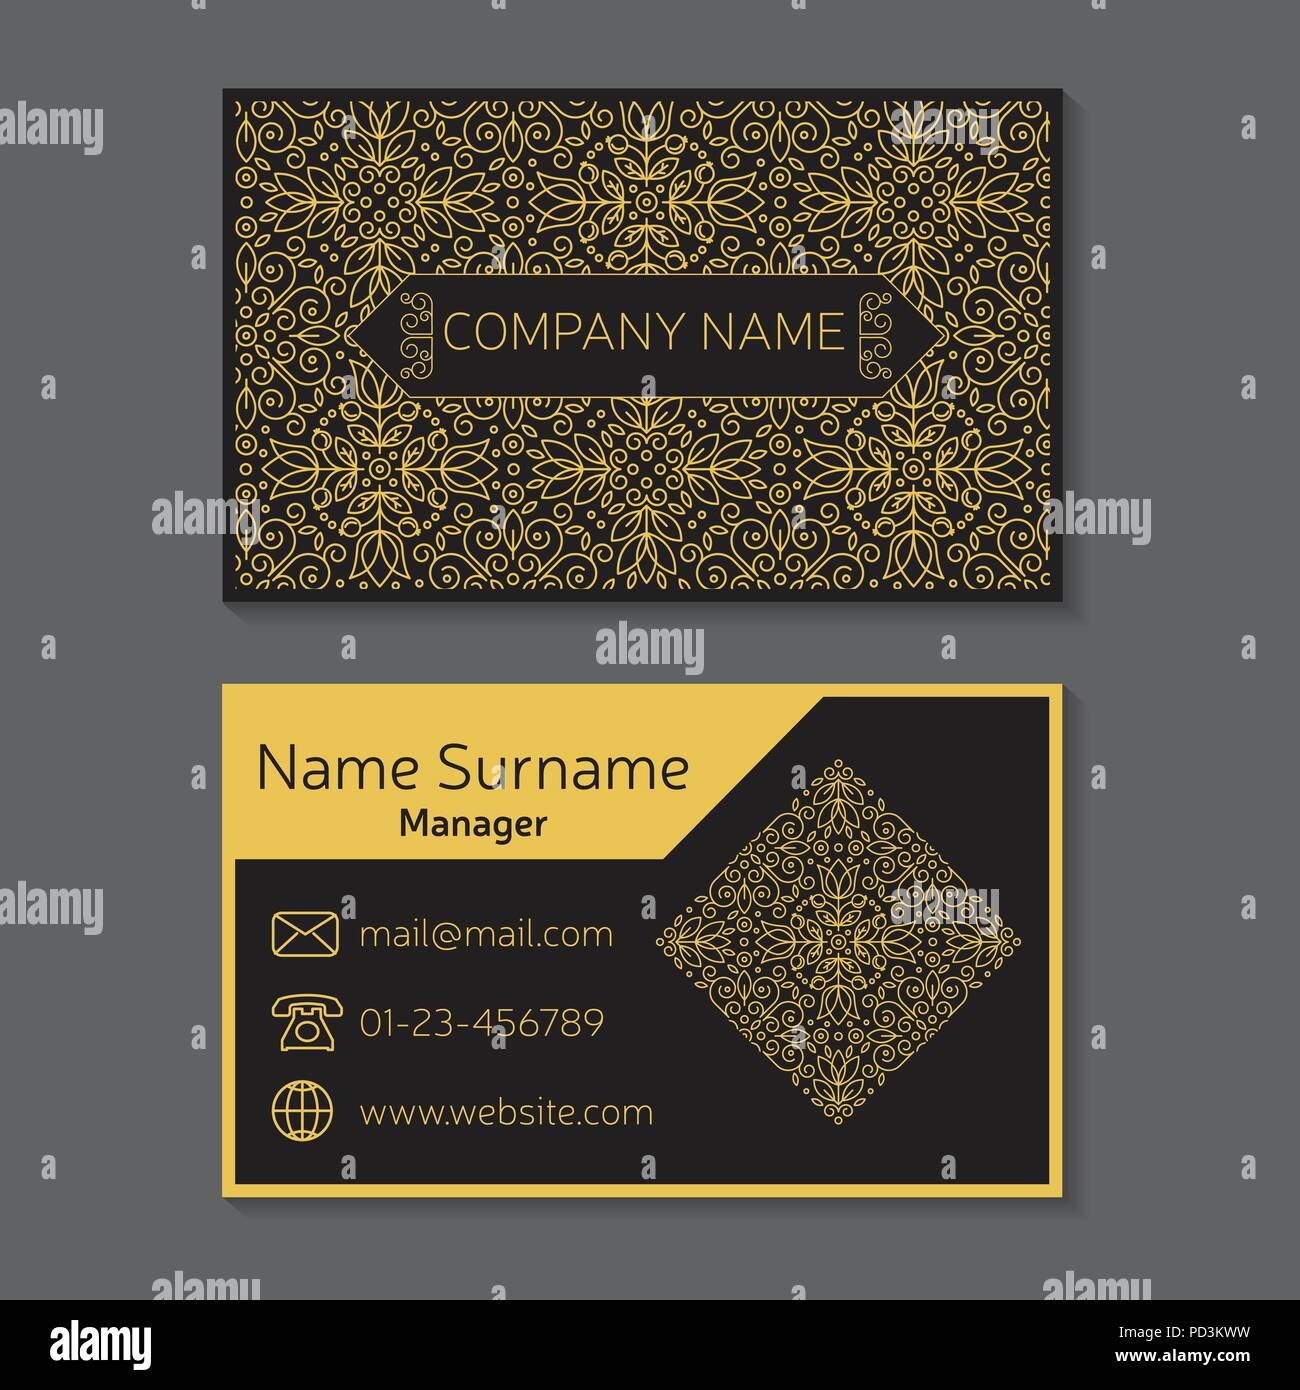 Visit card vector vectors stock photos visit card vector vectors business card vector editable template include front and back side geometric seamless pattern and reheart Choice Image